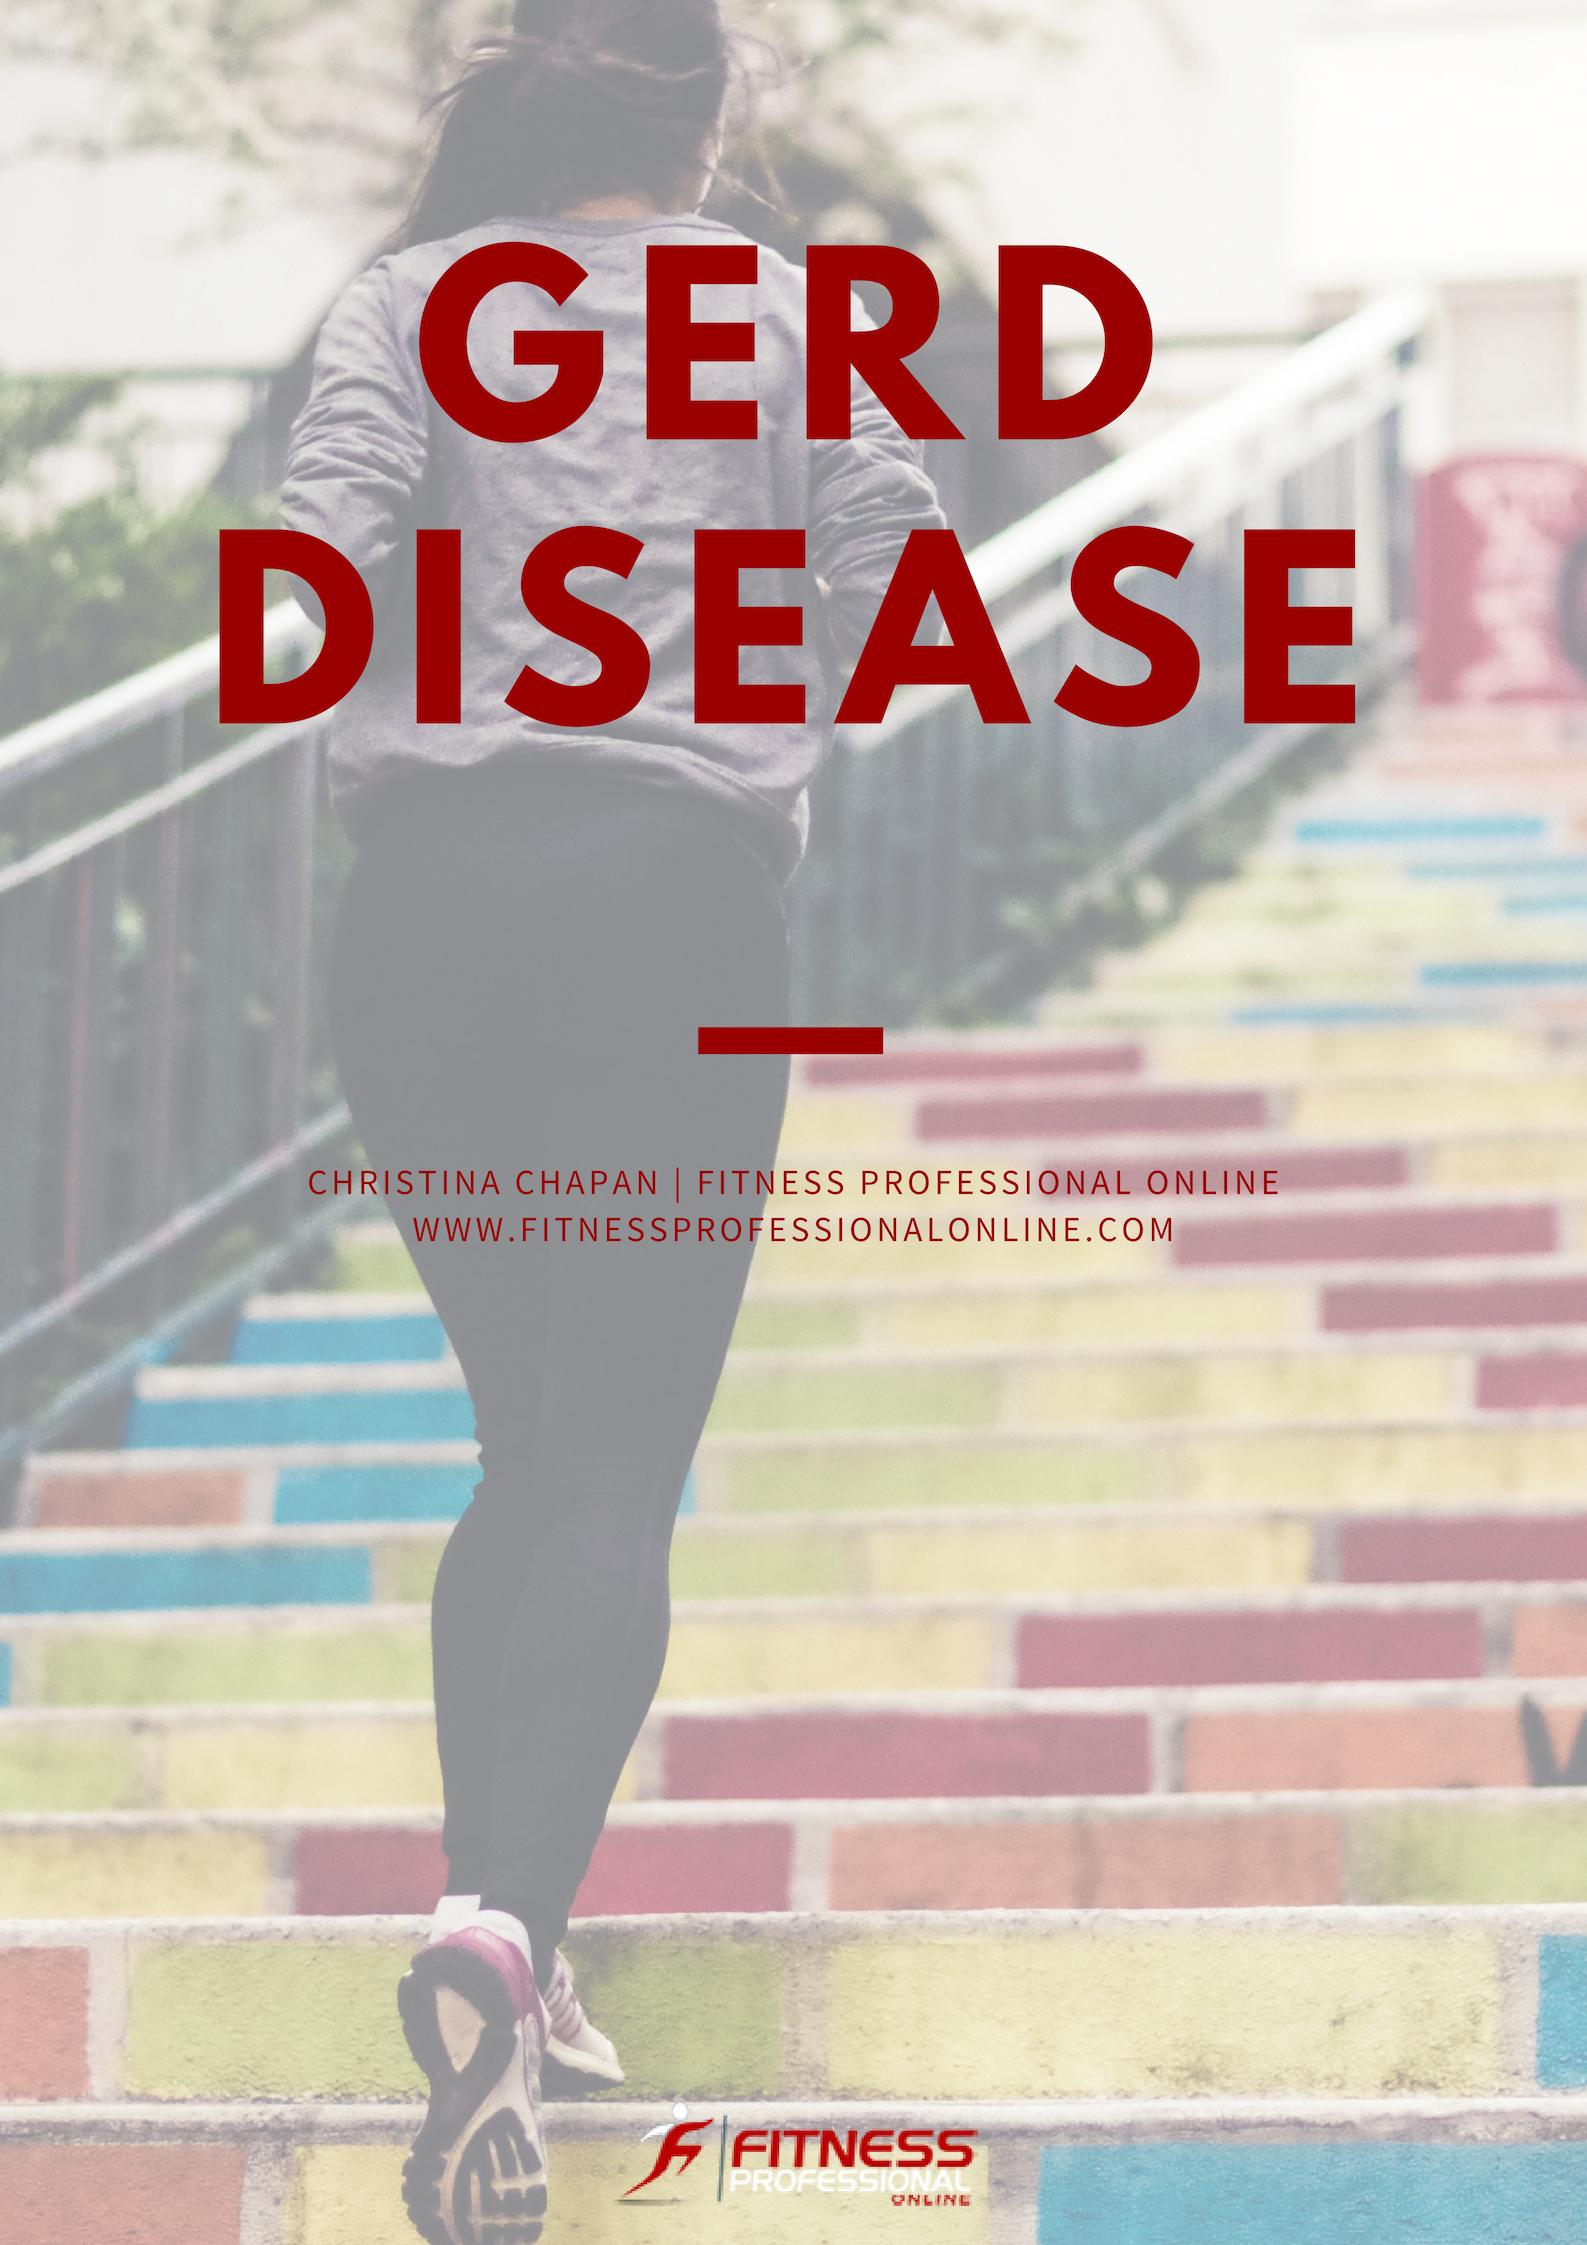 Gastroesophageal reflux disease, also known as GERD, causes symptoms such as persistent heartburn and acid reflux.